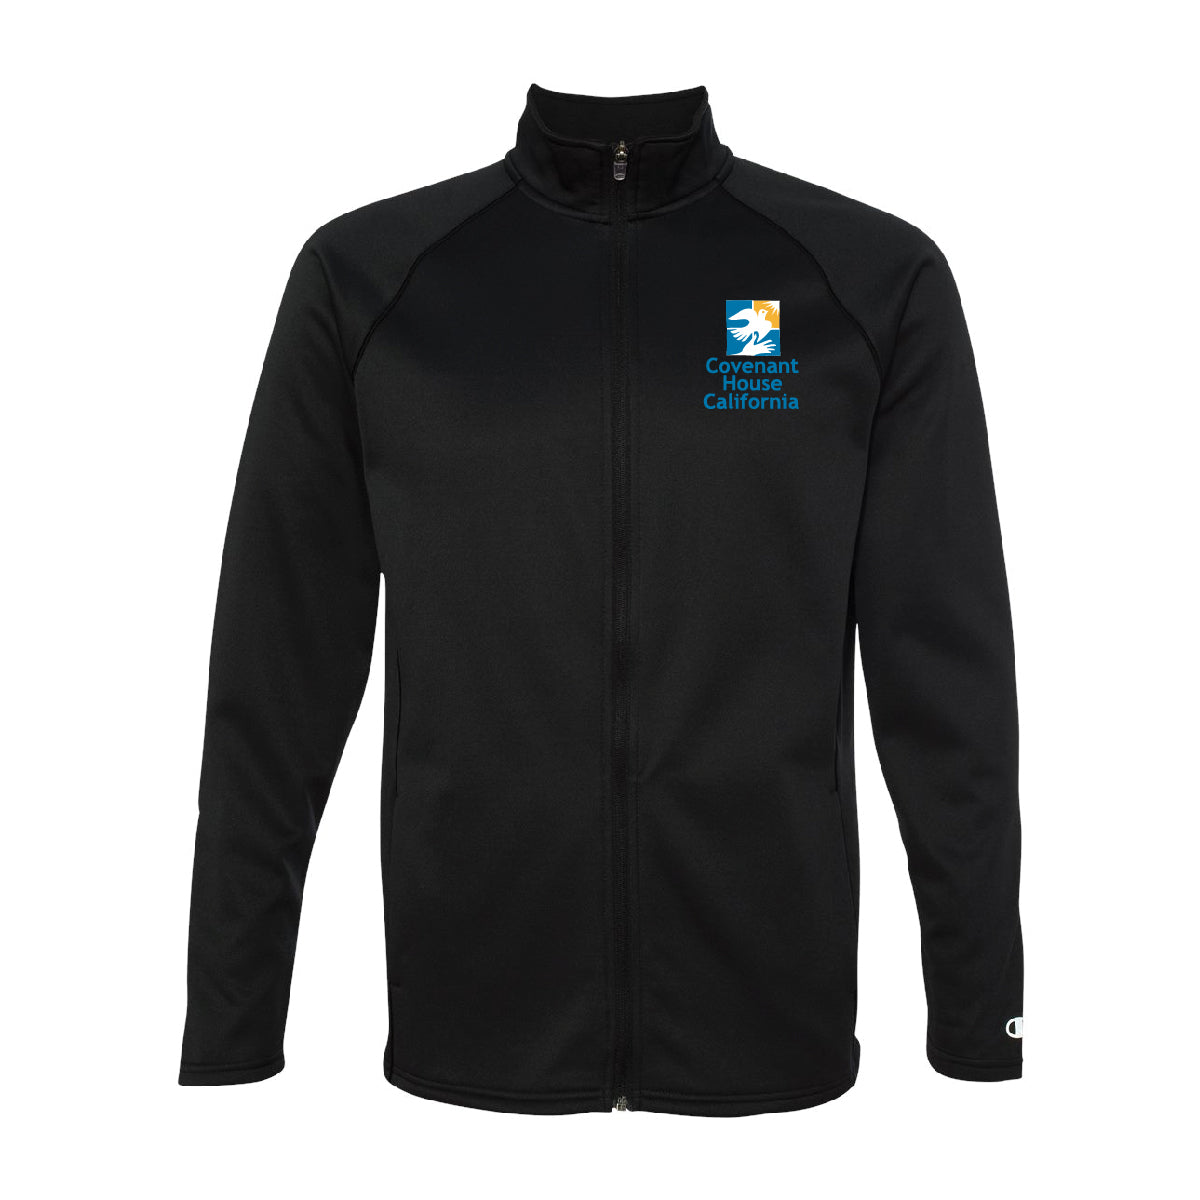 Full Zip Jacket - Black